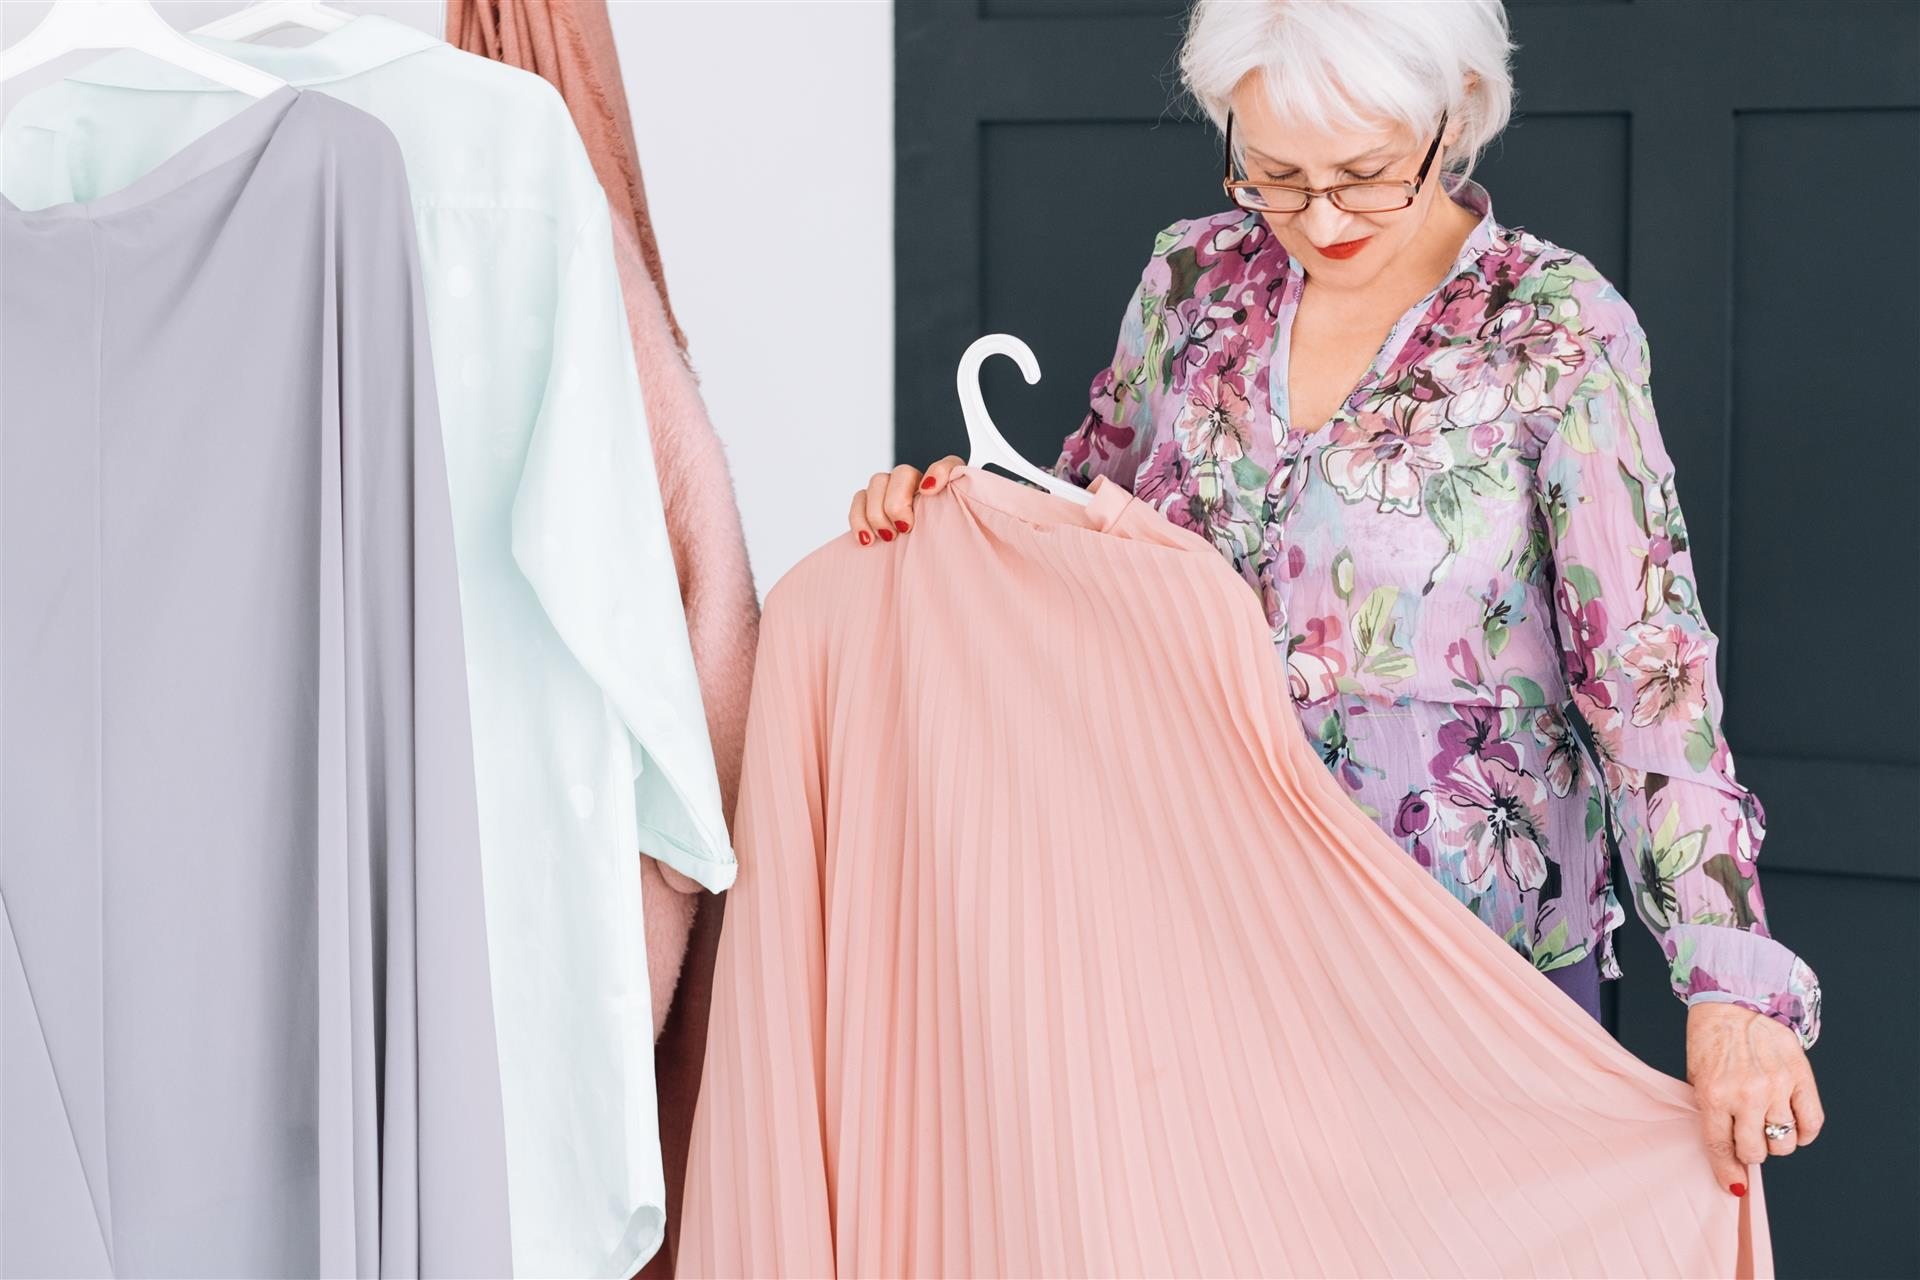 Places to Buy Clothing Geared to Senior Tastes and Needs